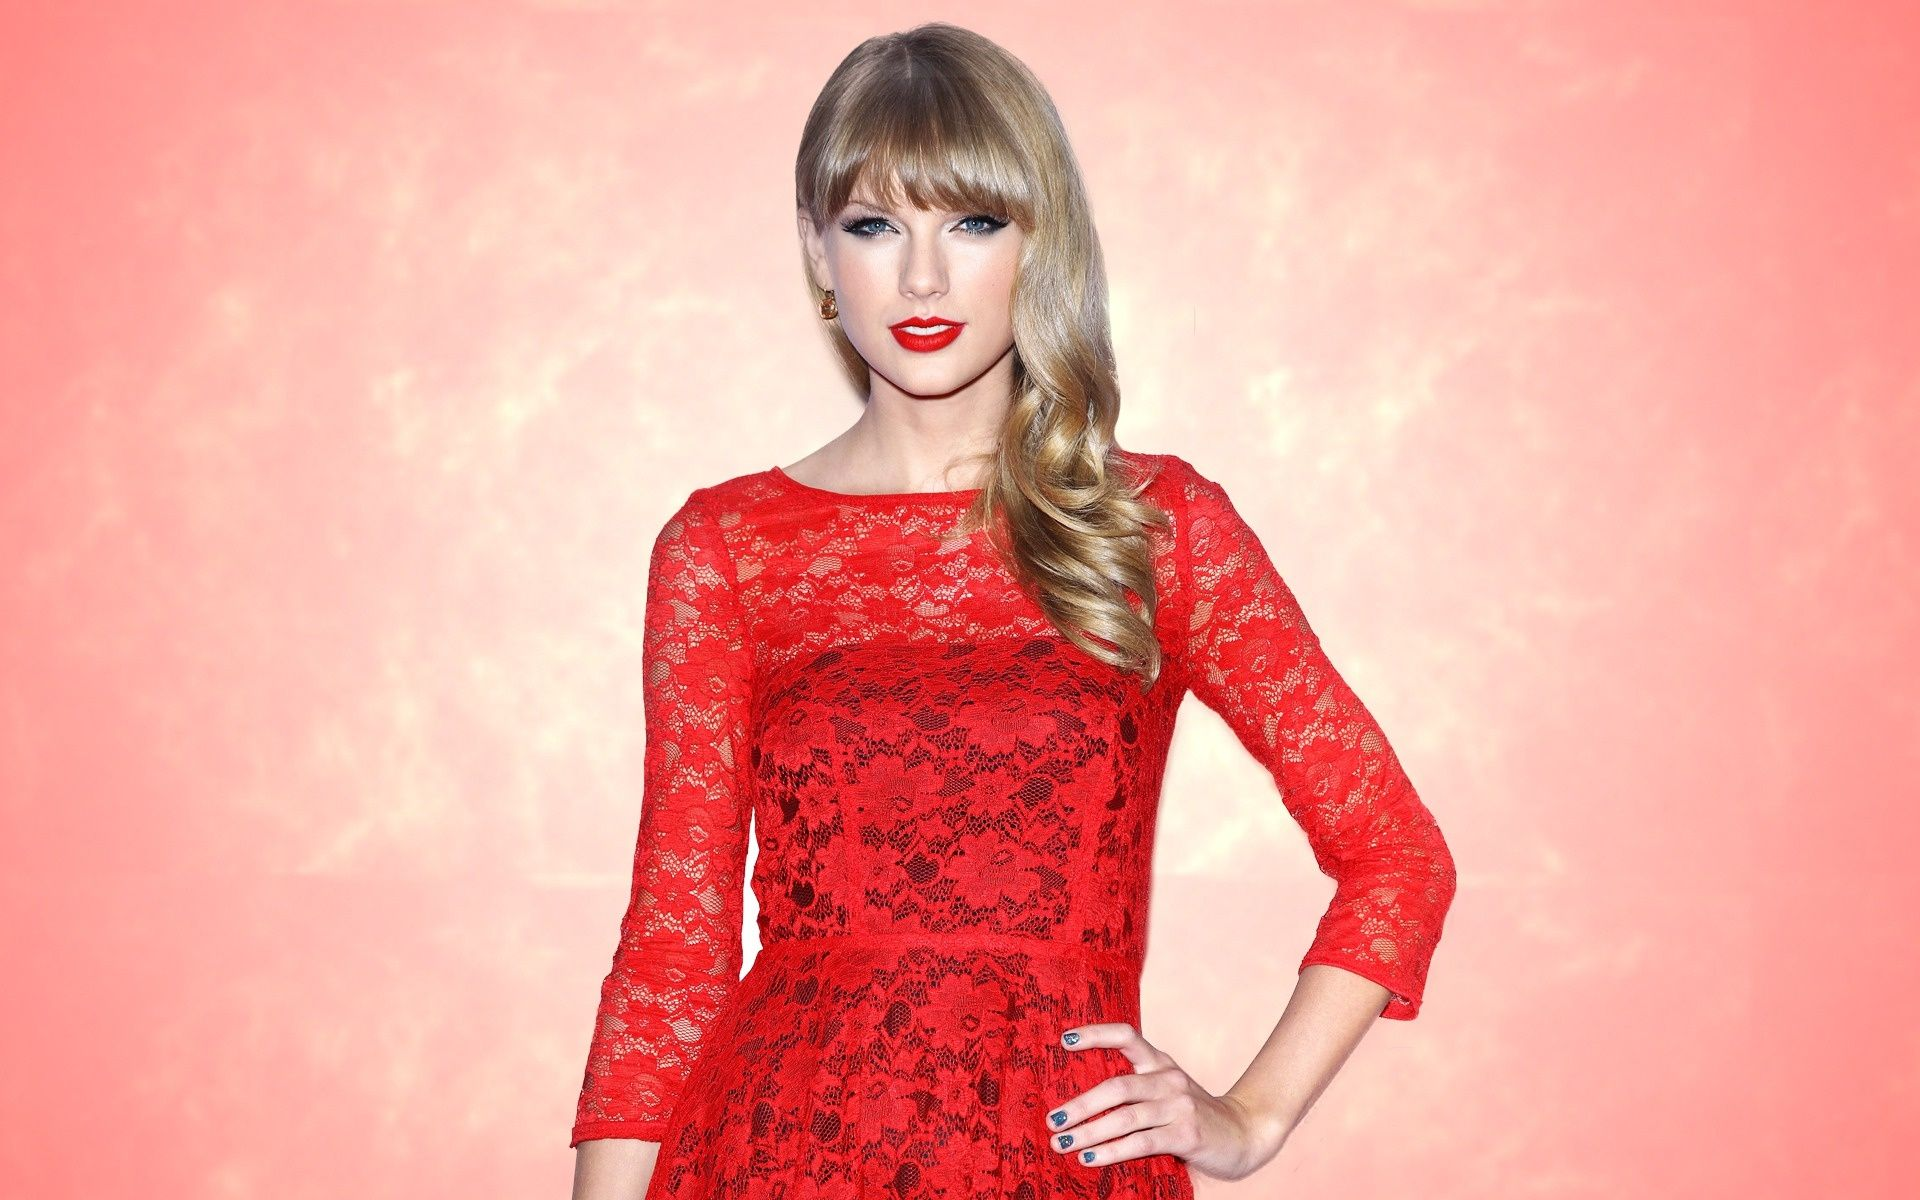 Taylor Swift Free Wallpapers - Wallpaper, High Definition ...